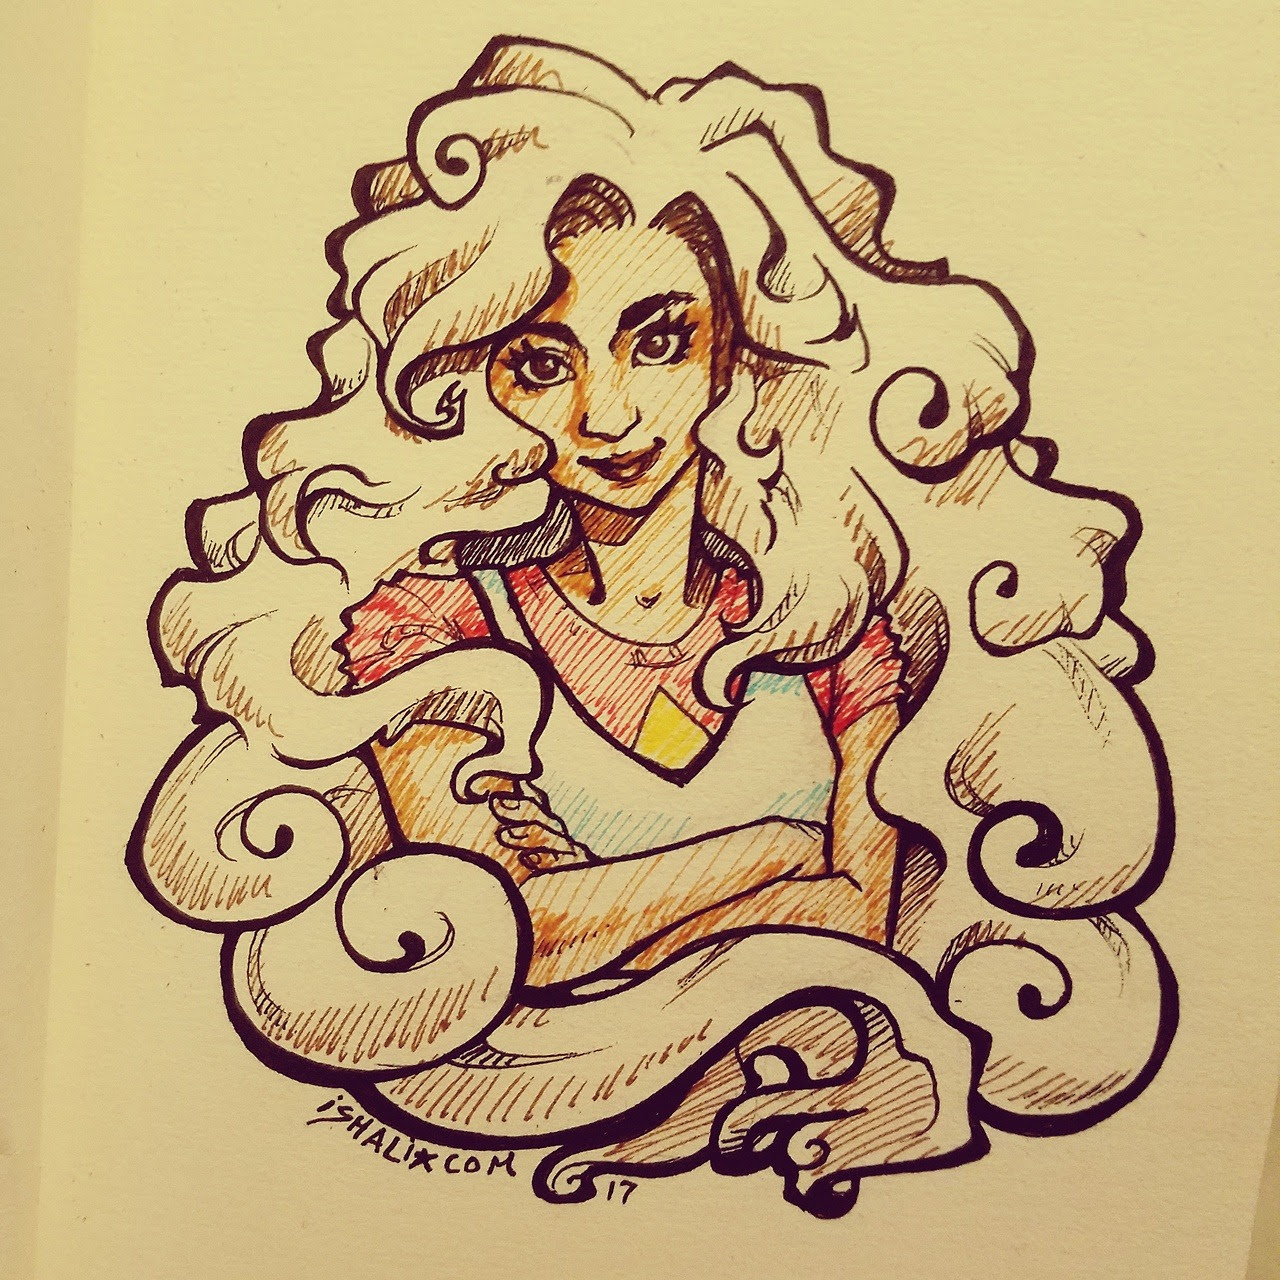 Started inktober late but I plan to catch up! Stevonnie from Steven Universe